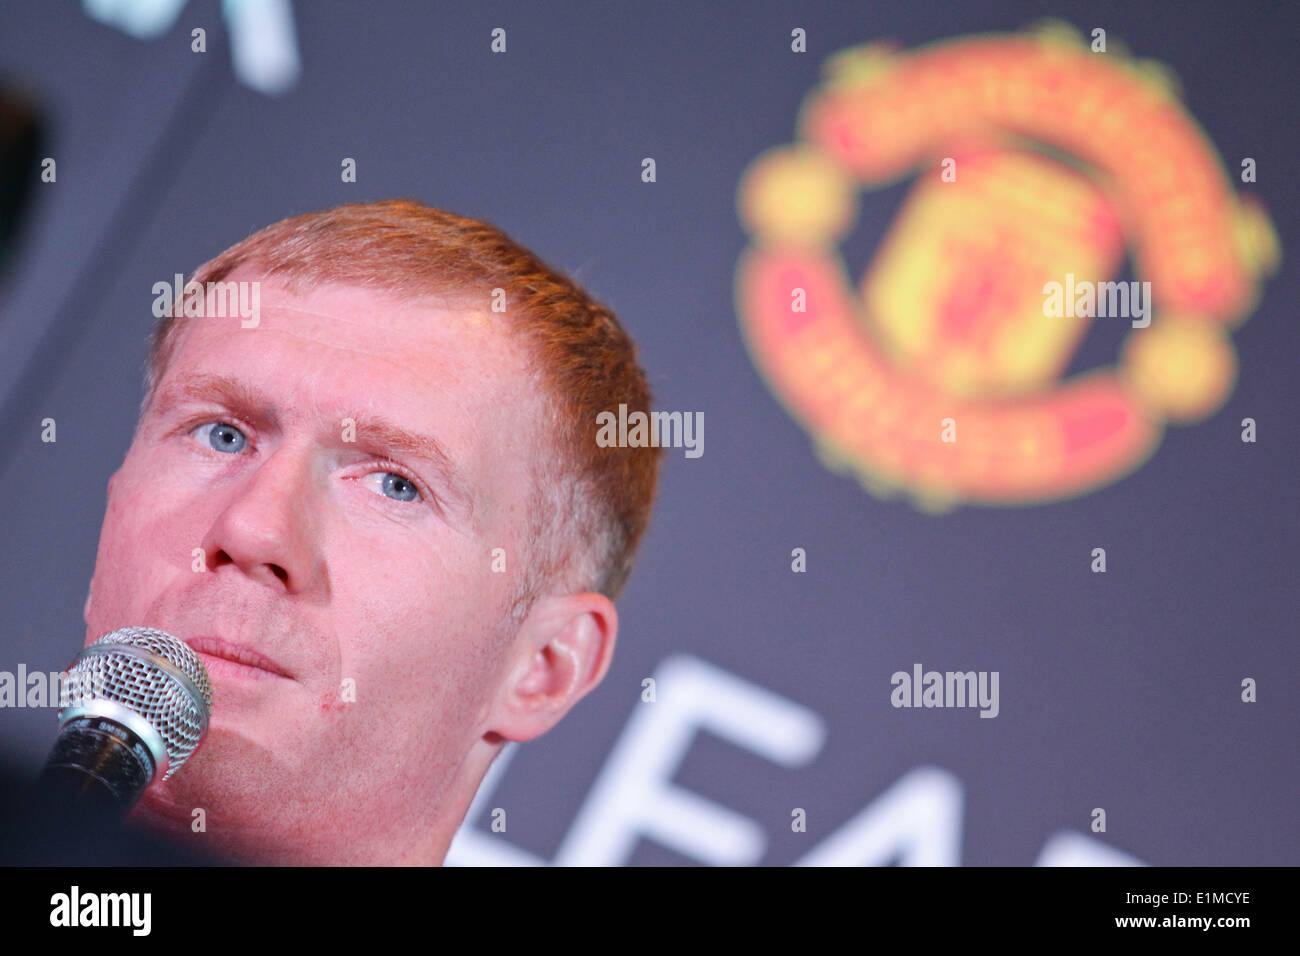 Manila, Philippines. 6th June, 2014. Makati, Philippines - Former Manchester United player Paul Scholes answers questions from the media during a press conference in Makati on June 6, 2014. Together with Andy Cole, they will play an exhibition game against local amatuer and professional football players. Credit:  Mark Cristino/NurPhoto/ZUMAPRESS.com/Alamy Live News - Stock Image